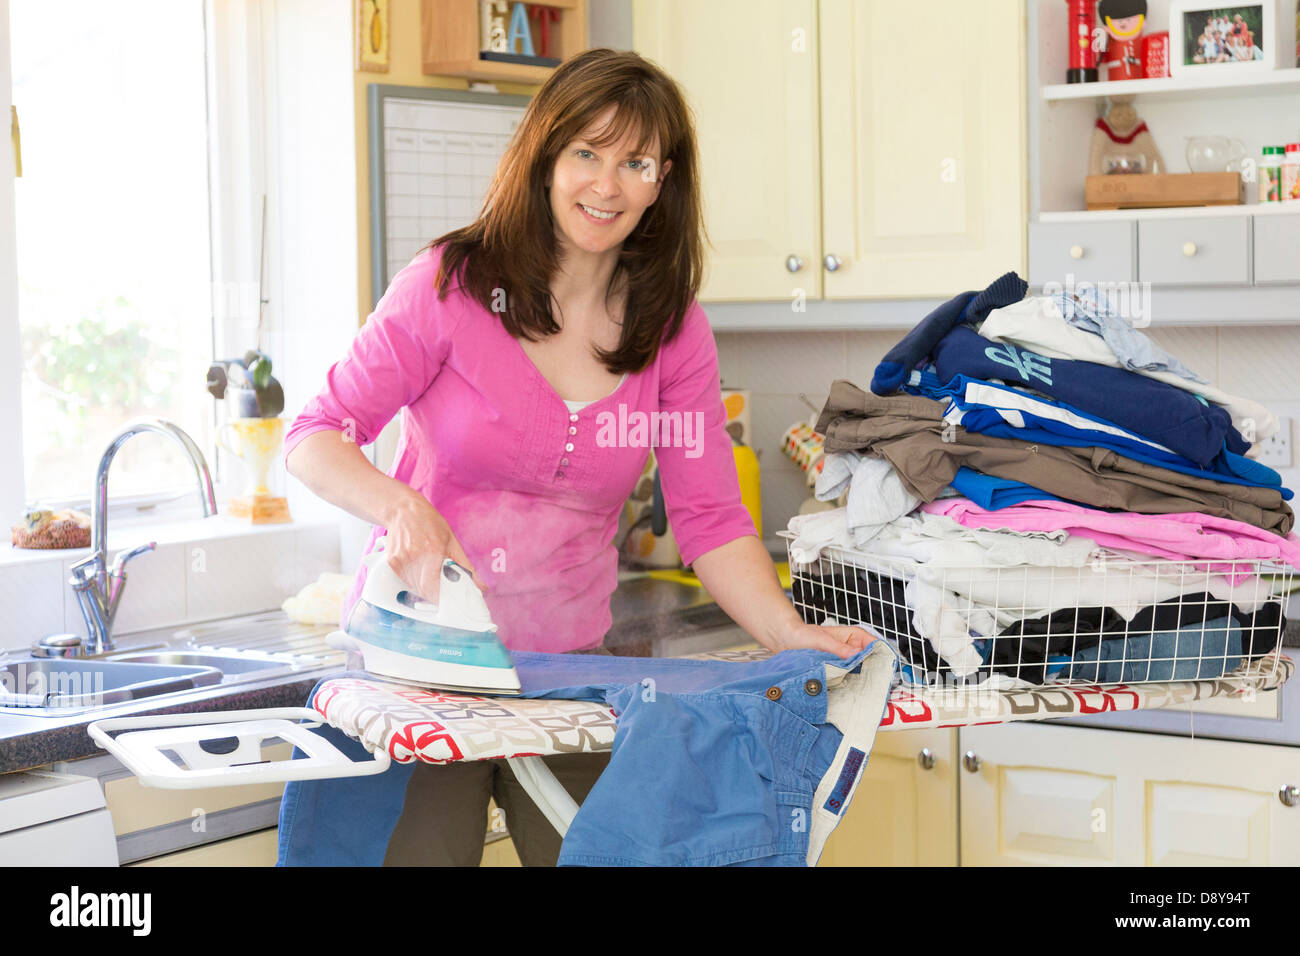 woman doing the ironing - Stock Image